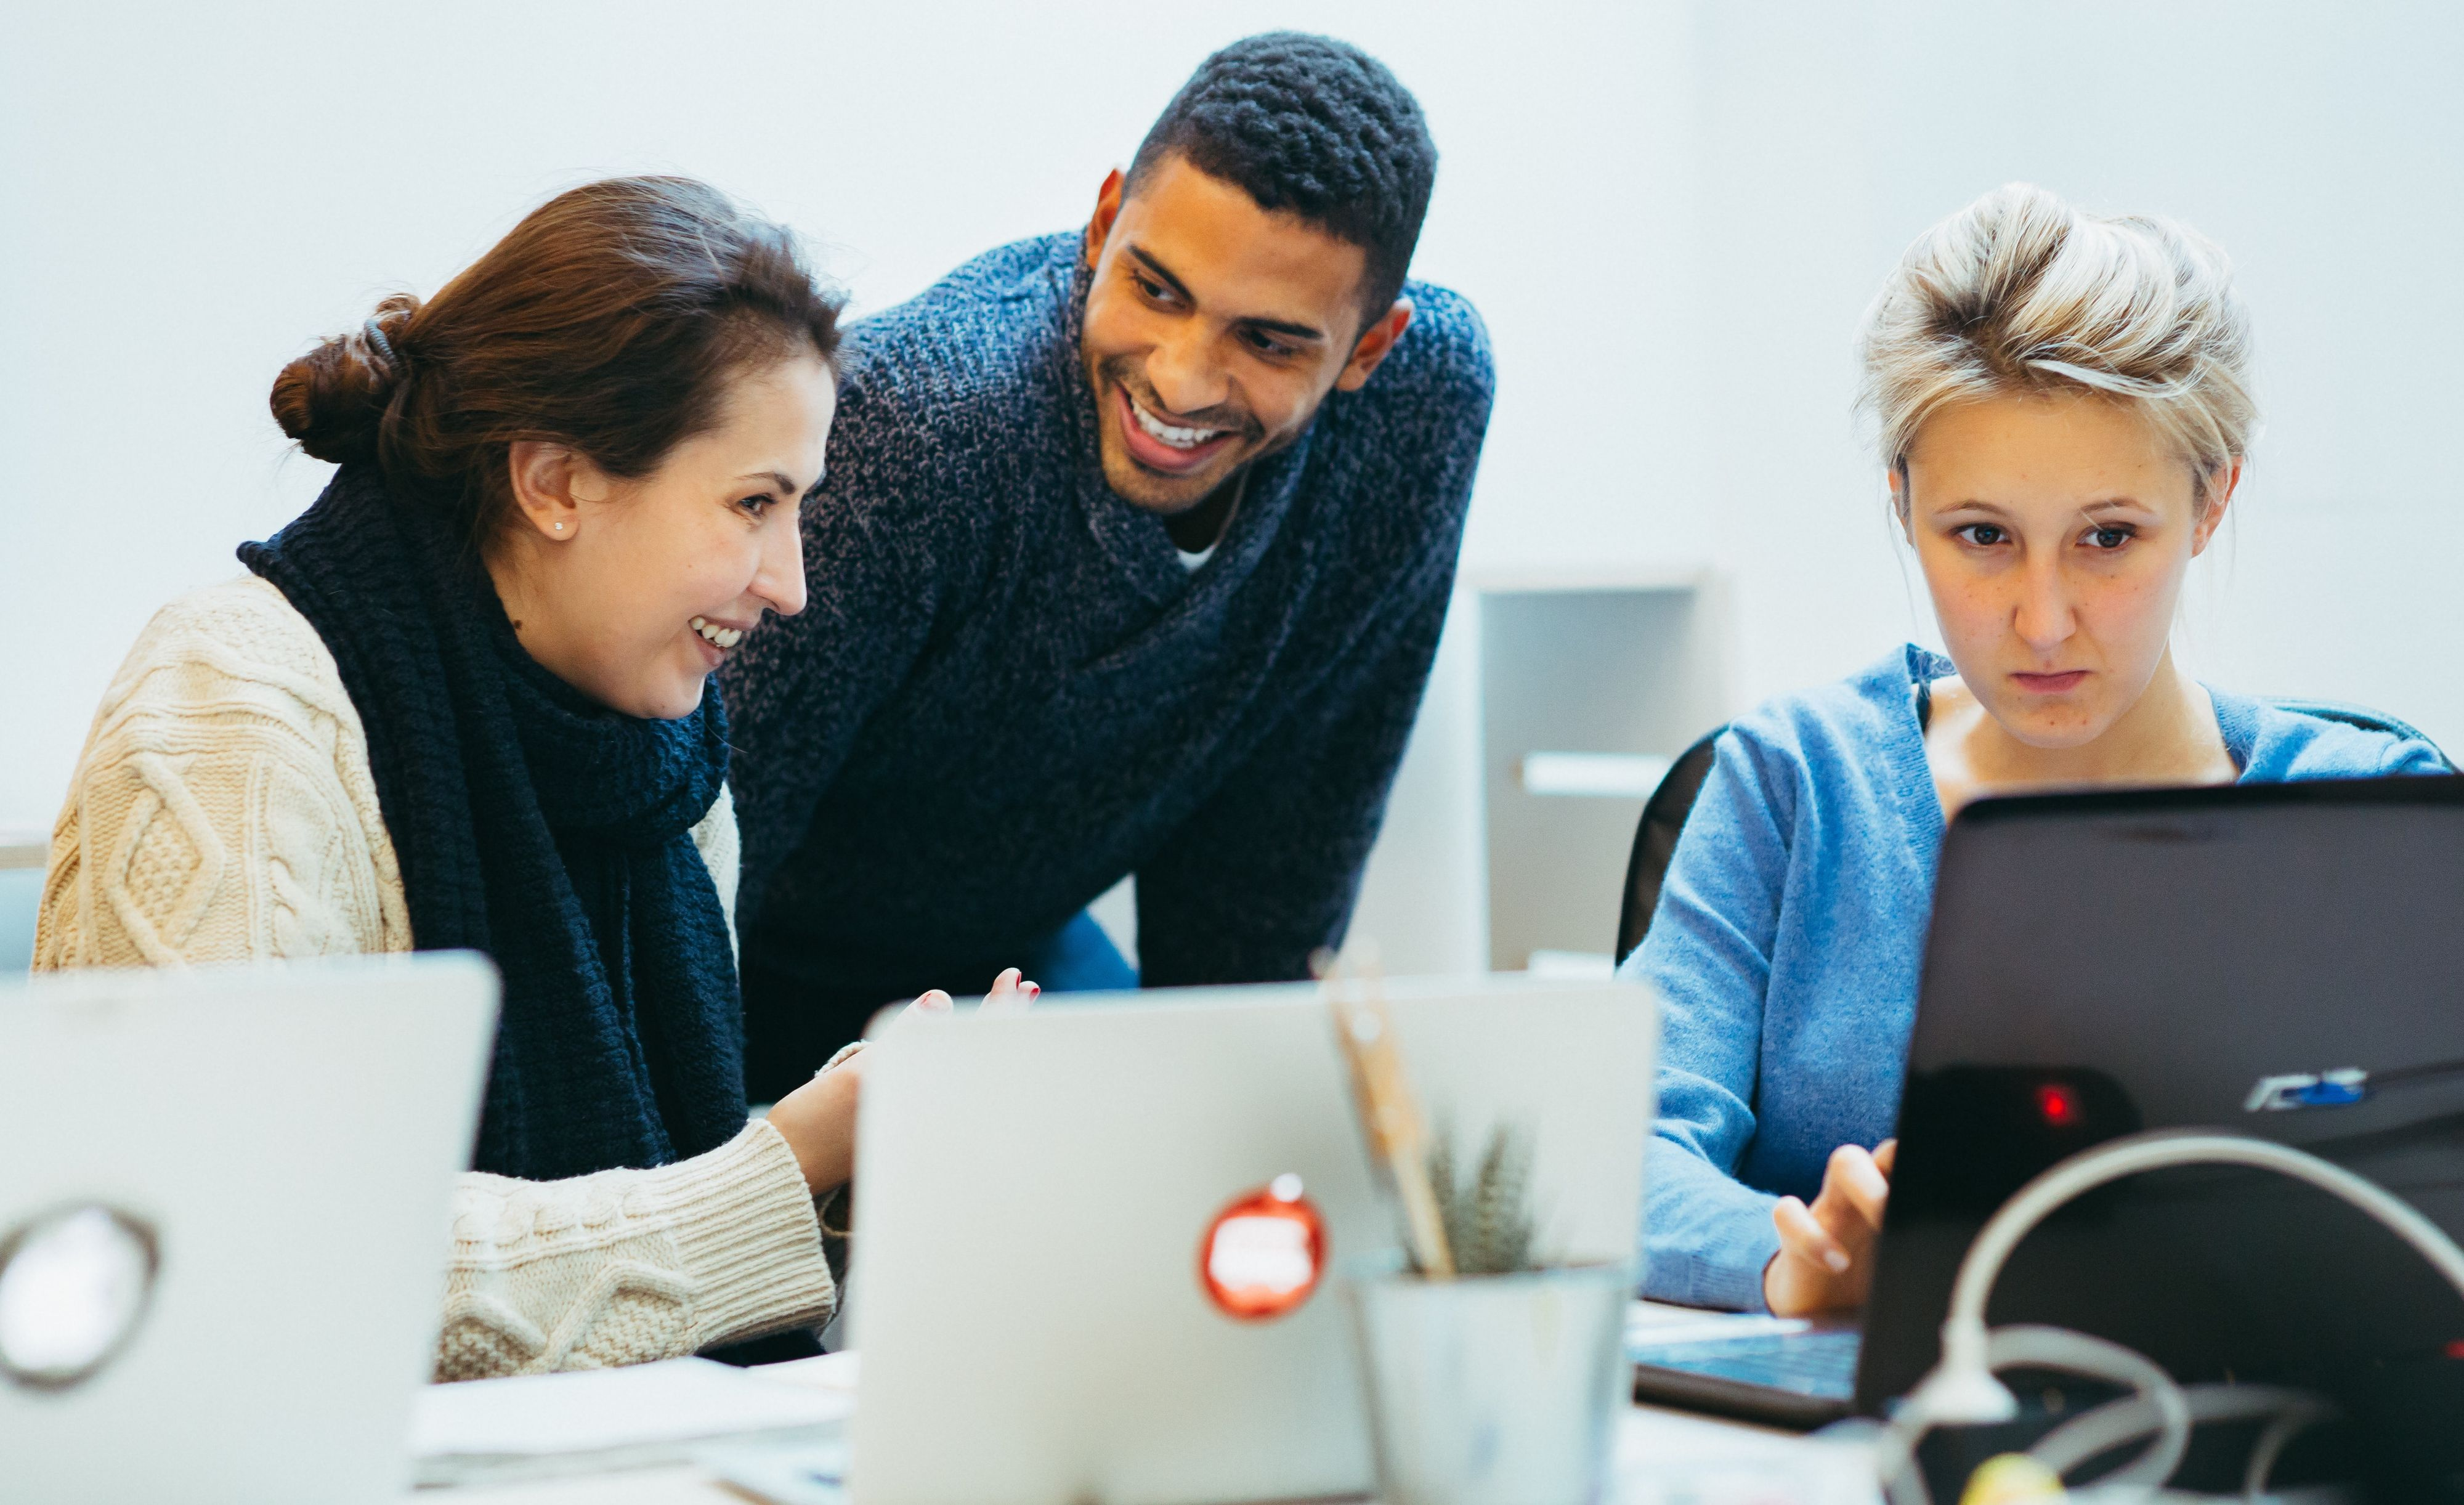 How Leaders Can Use Peer Learning to Supercharge Their Teams